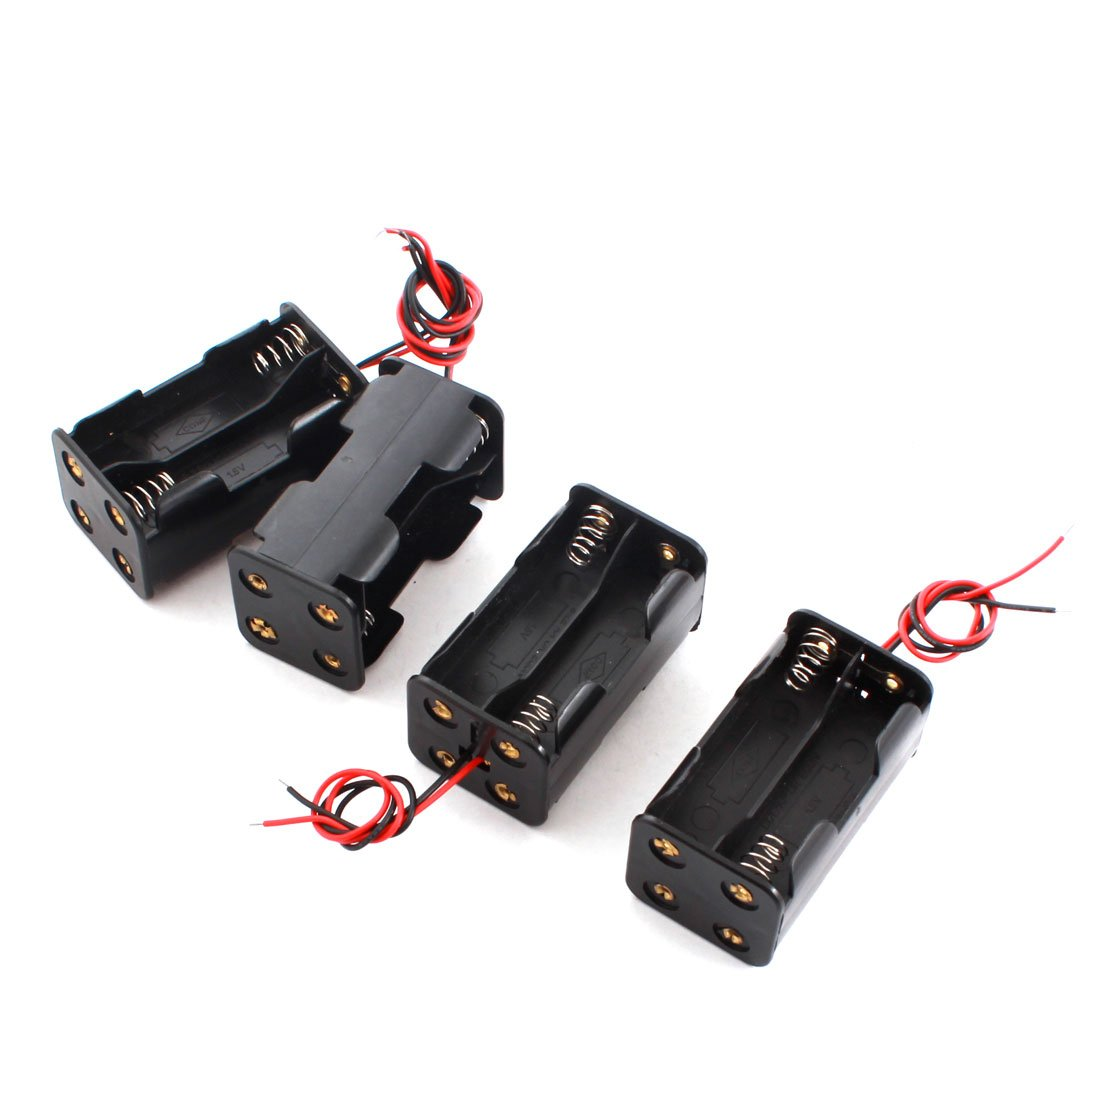 uxcell 4pcs DIY Double Sides 4 x AA Battery Case Holder Box Container a14091900ux0487